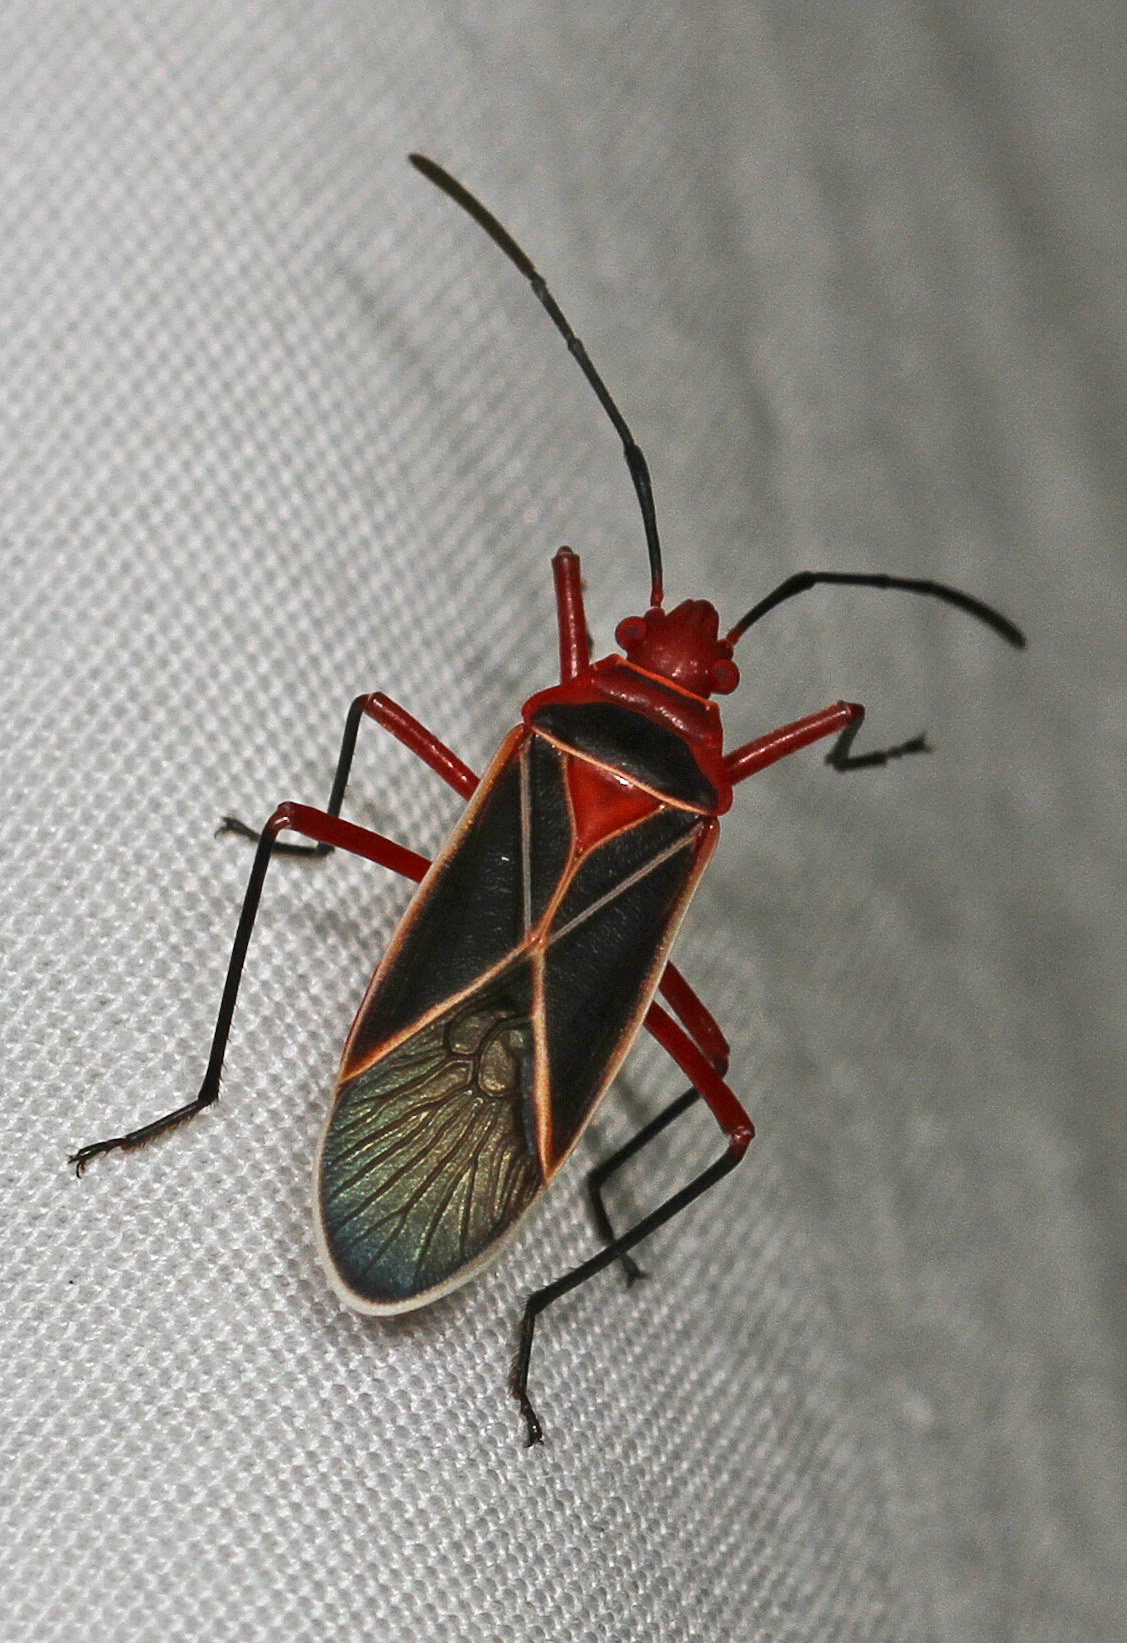 Image of Cotton Stainer